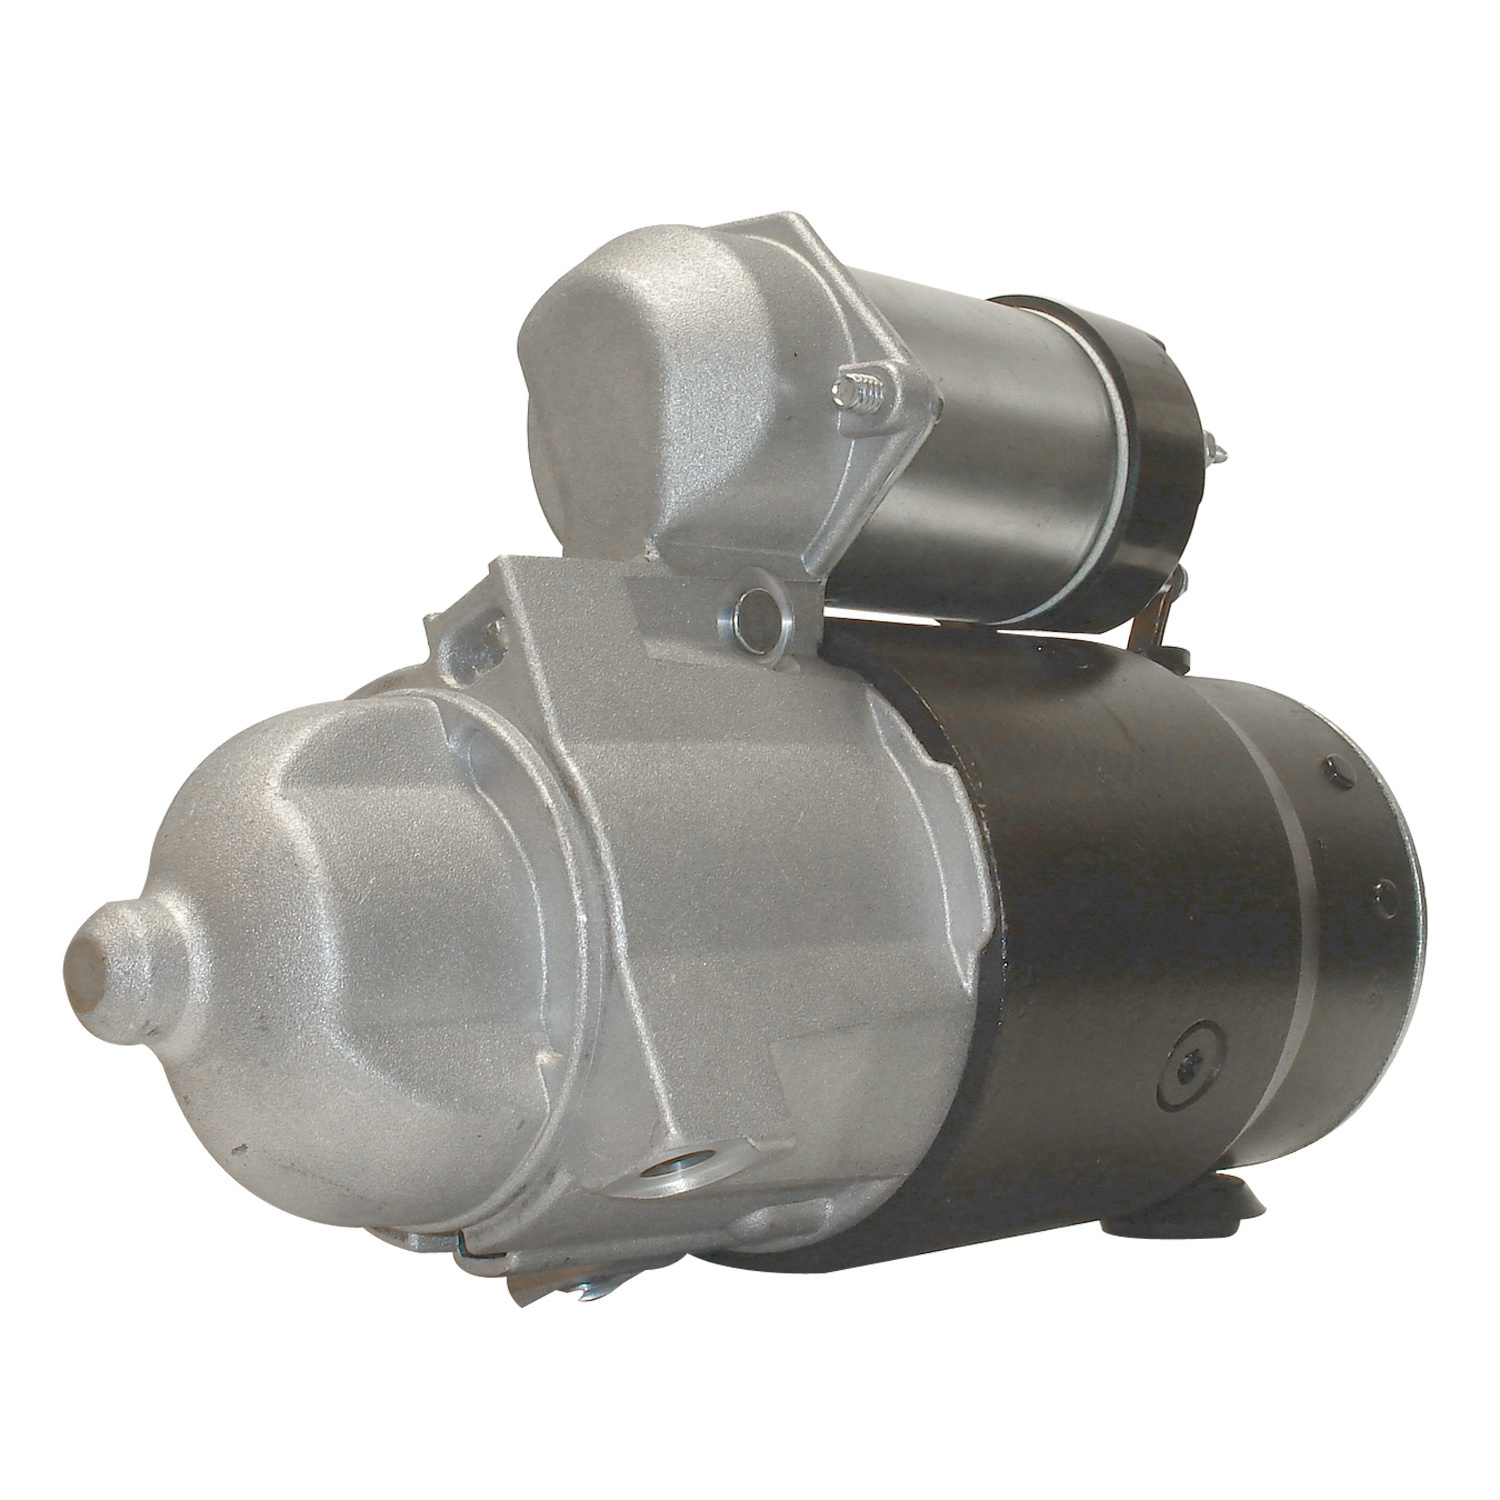 ACDELCO GOLD/PROFESSIONAL - Reman Starter Motor - DCC 336-1824